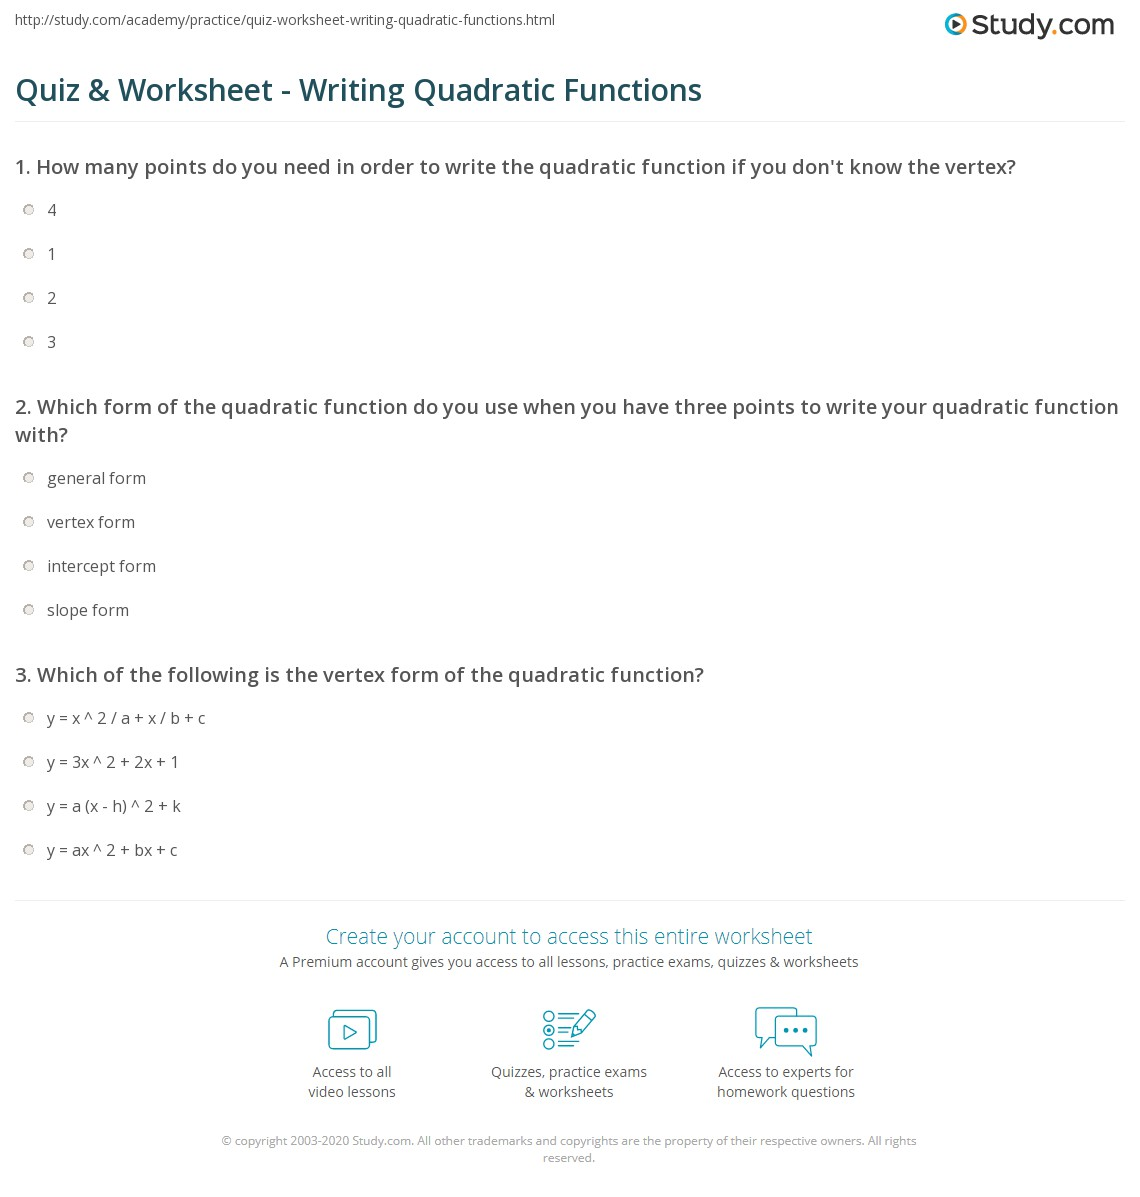 Worksheet Writing Quadratic Functions A 3 3